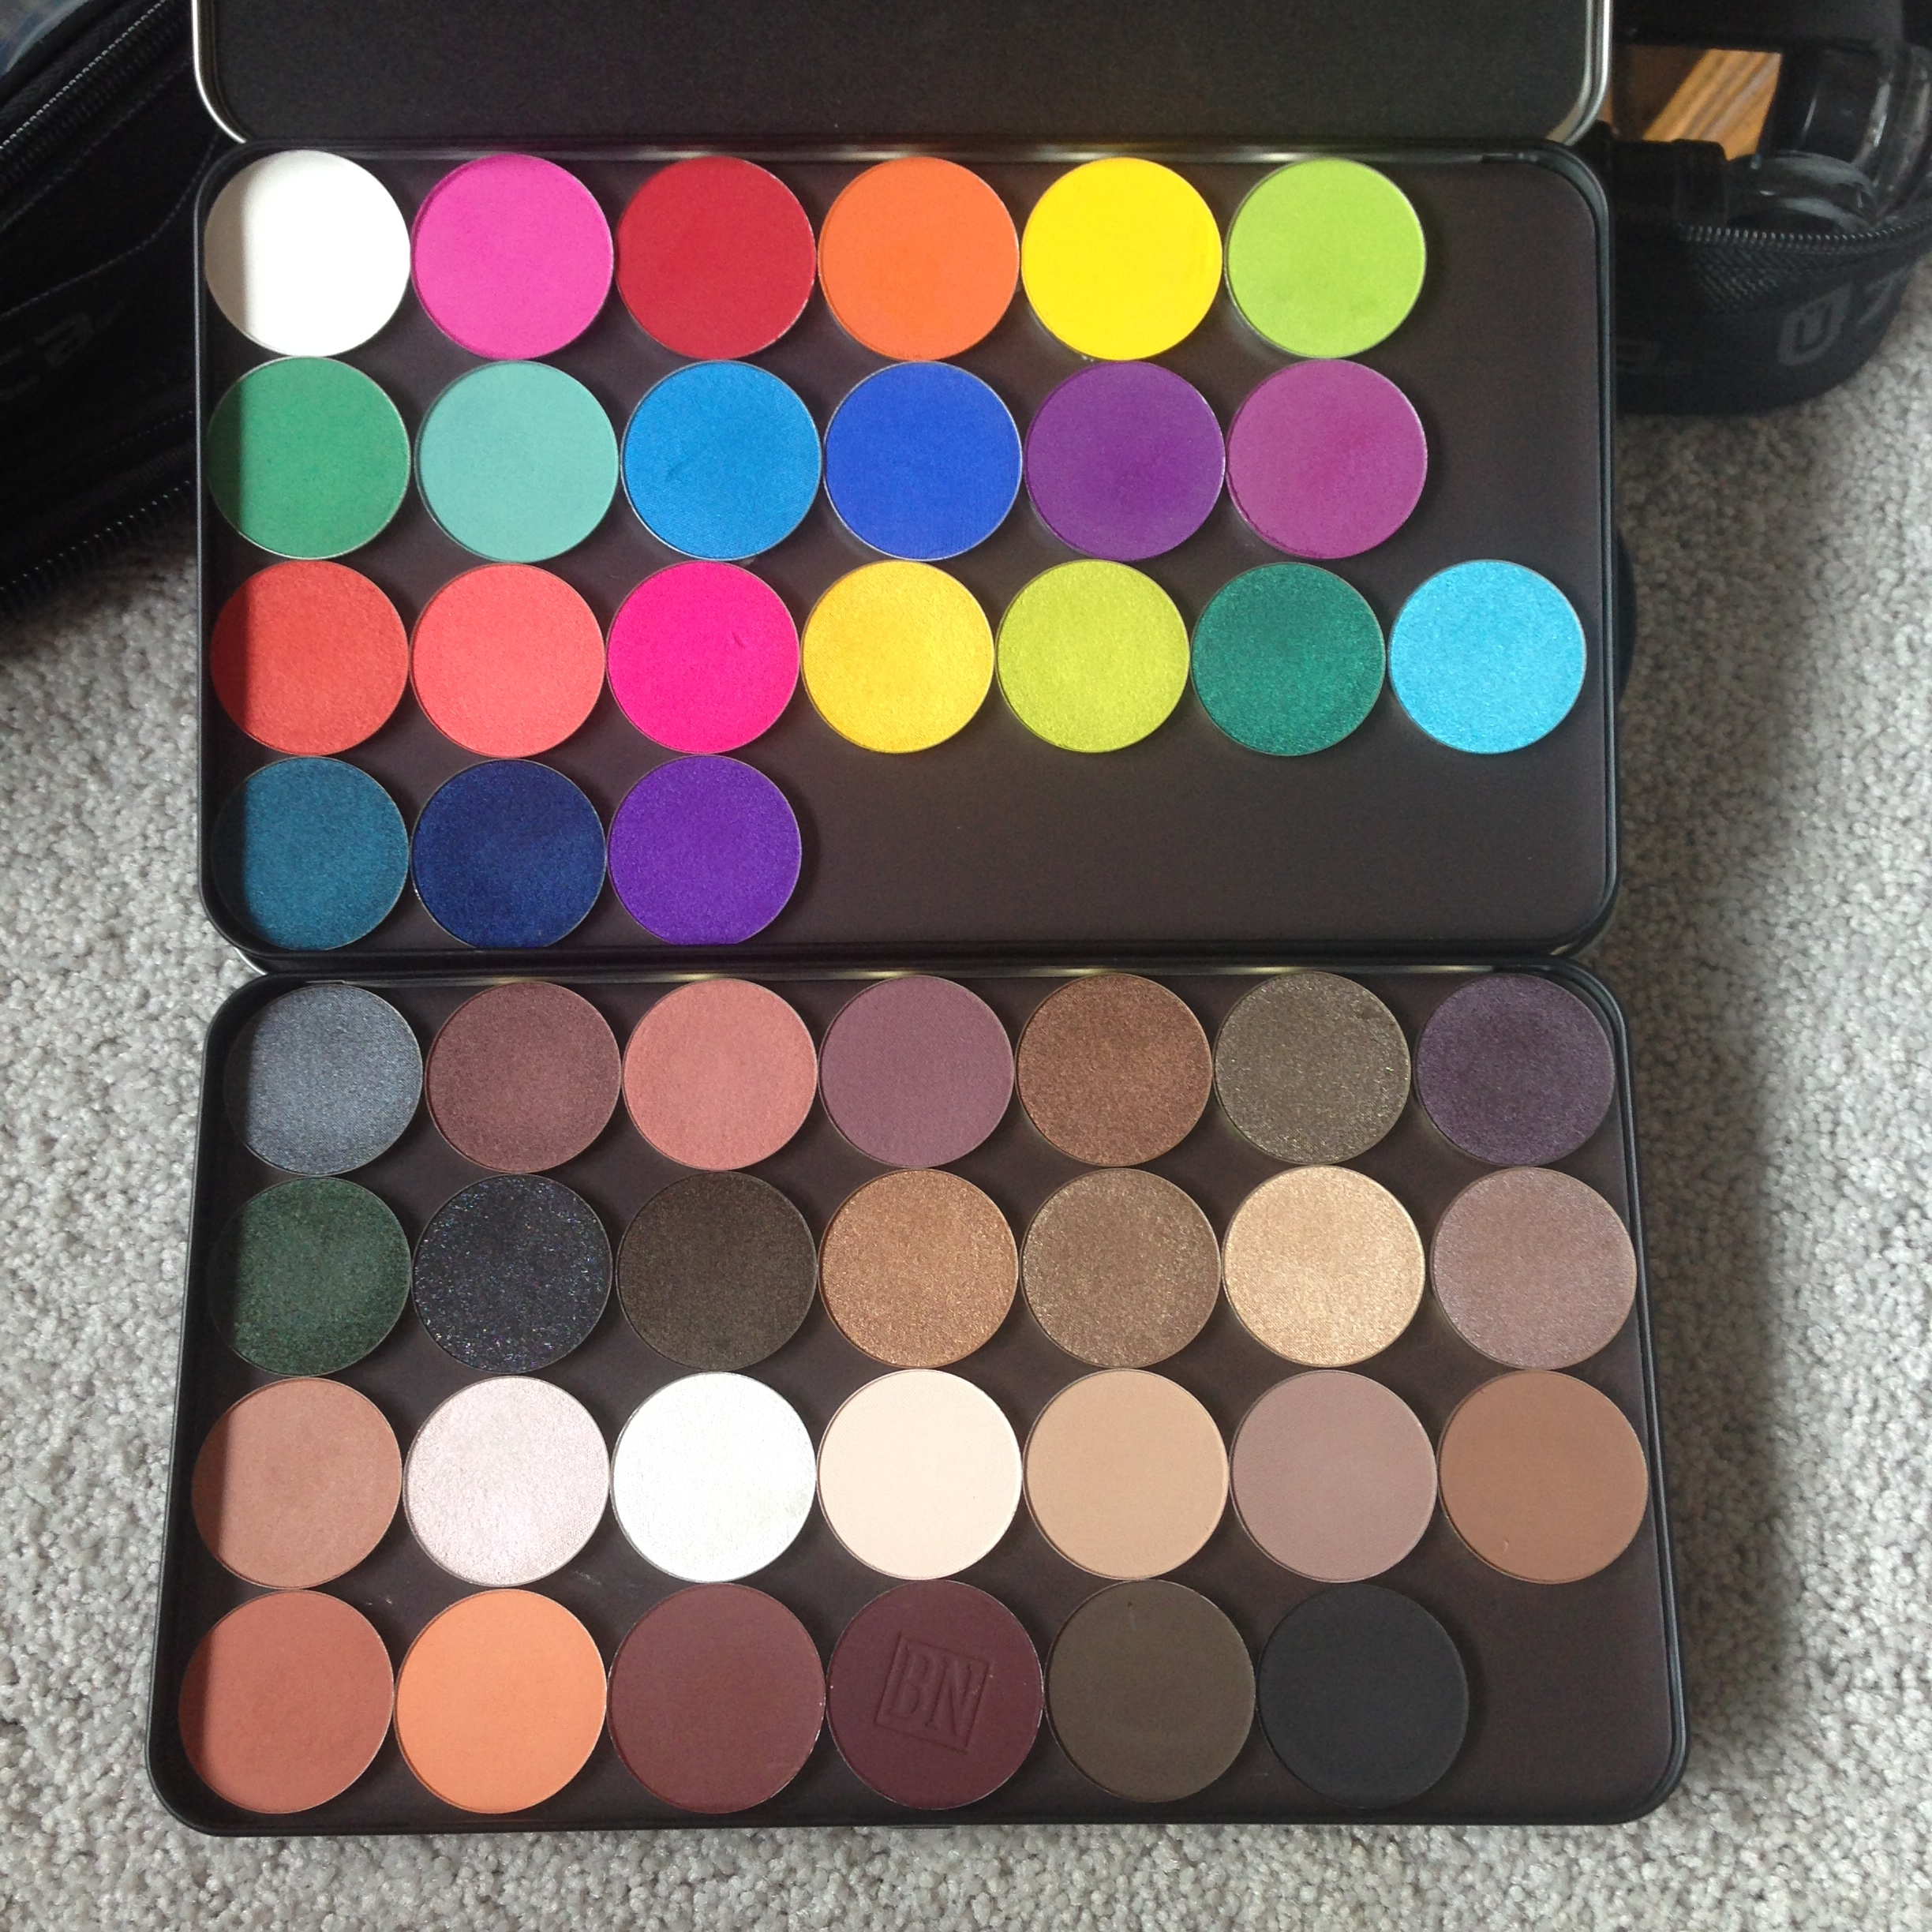 2 of my MUFE XL palettes. These hold28 MUFE eyeshadows (New and old formula) without the insert